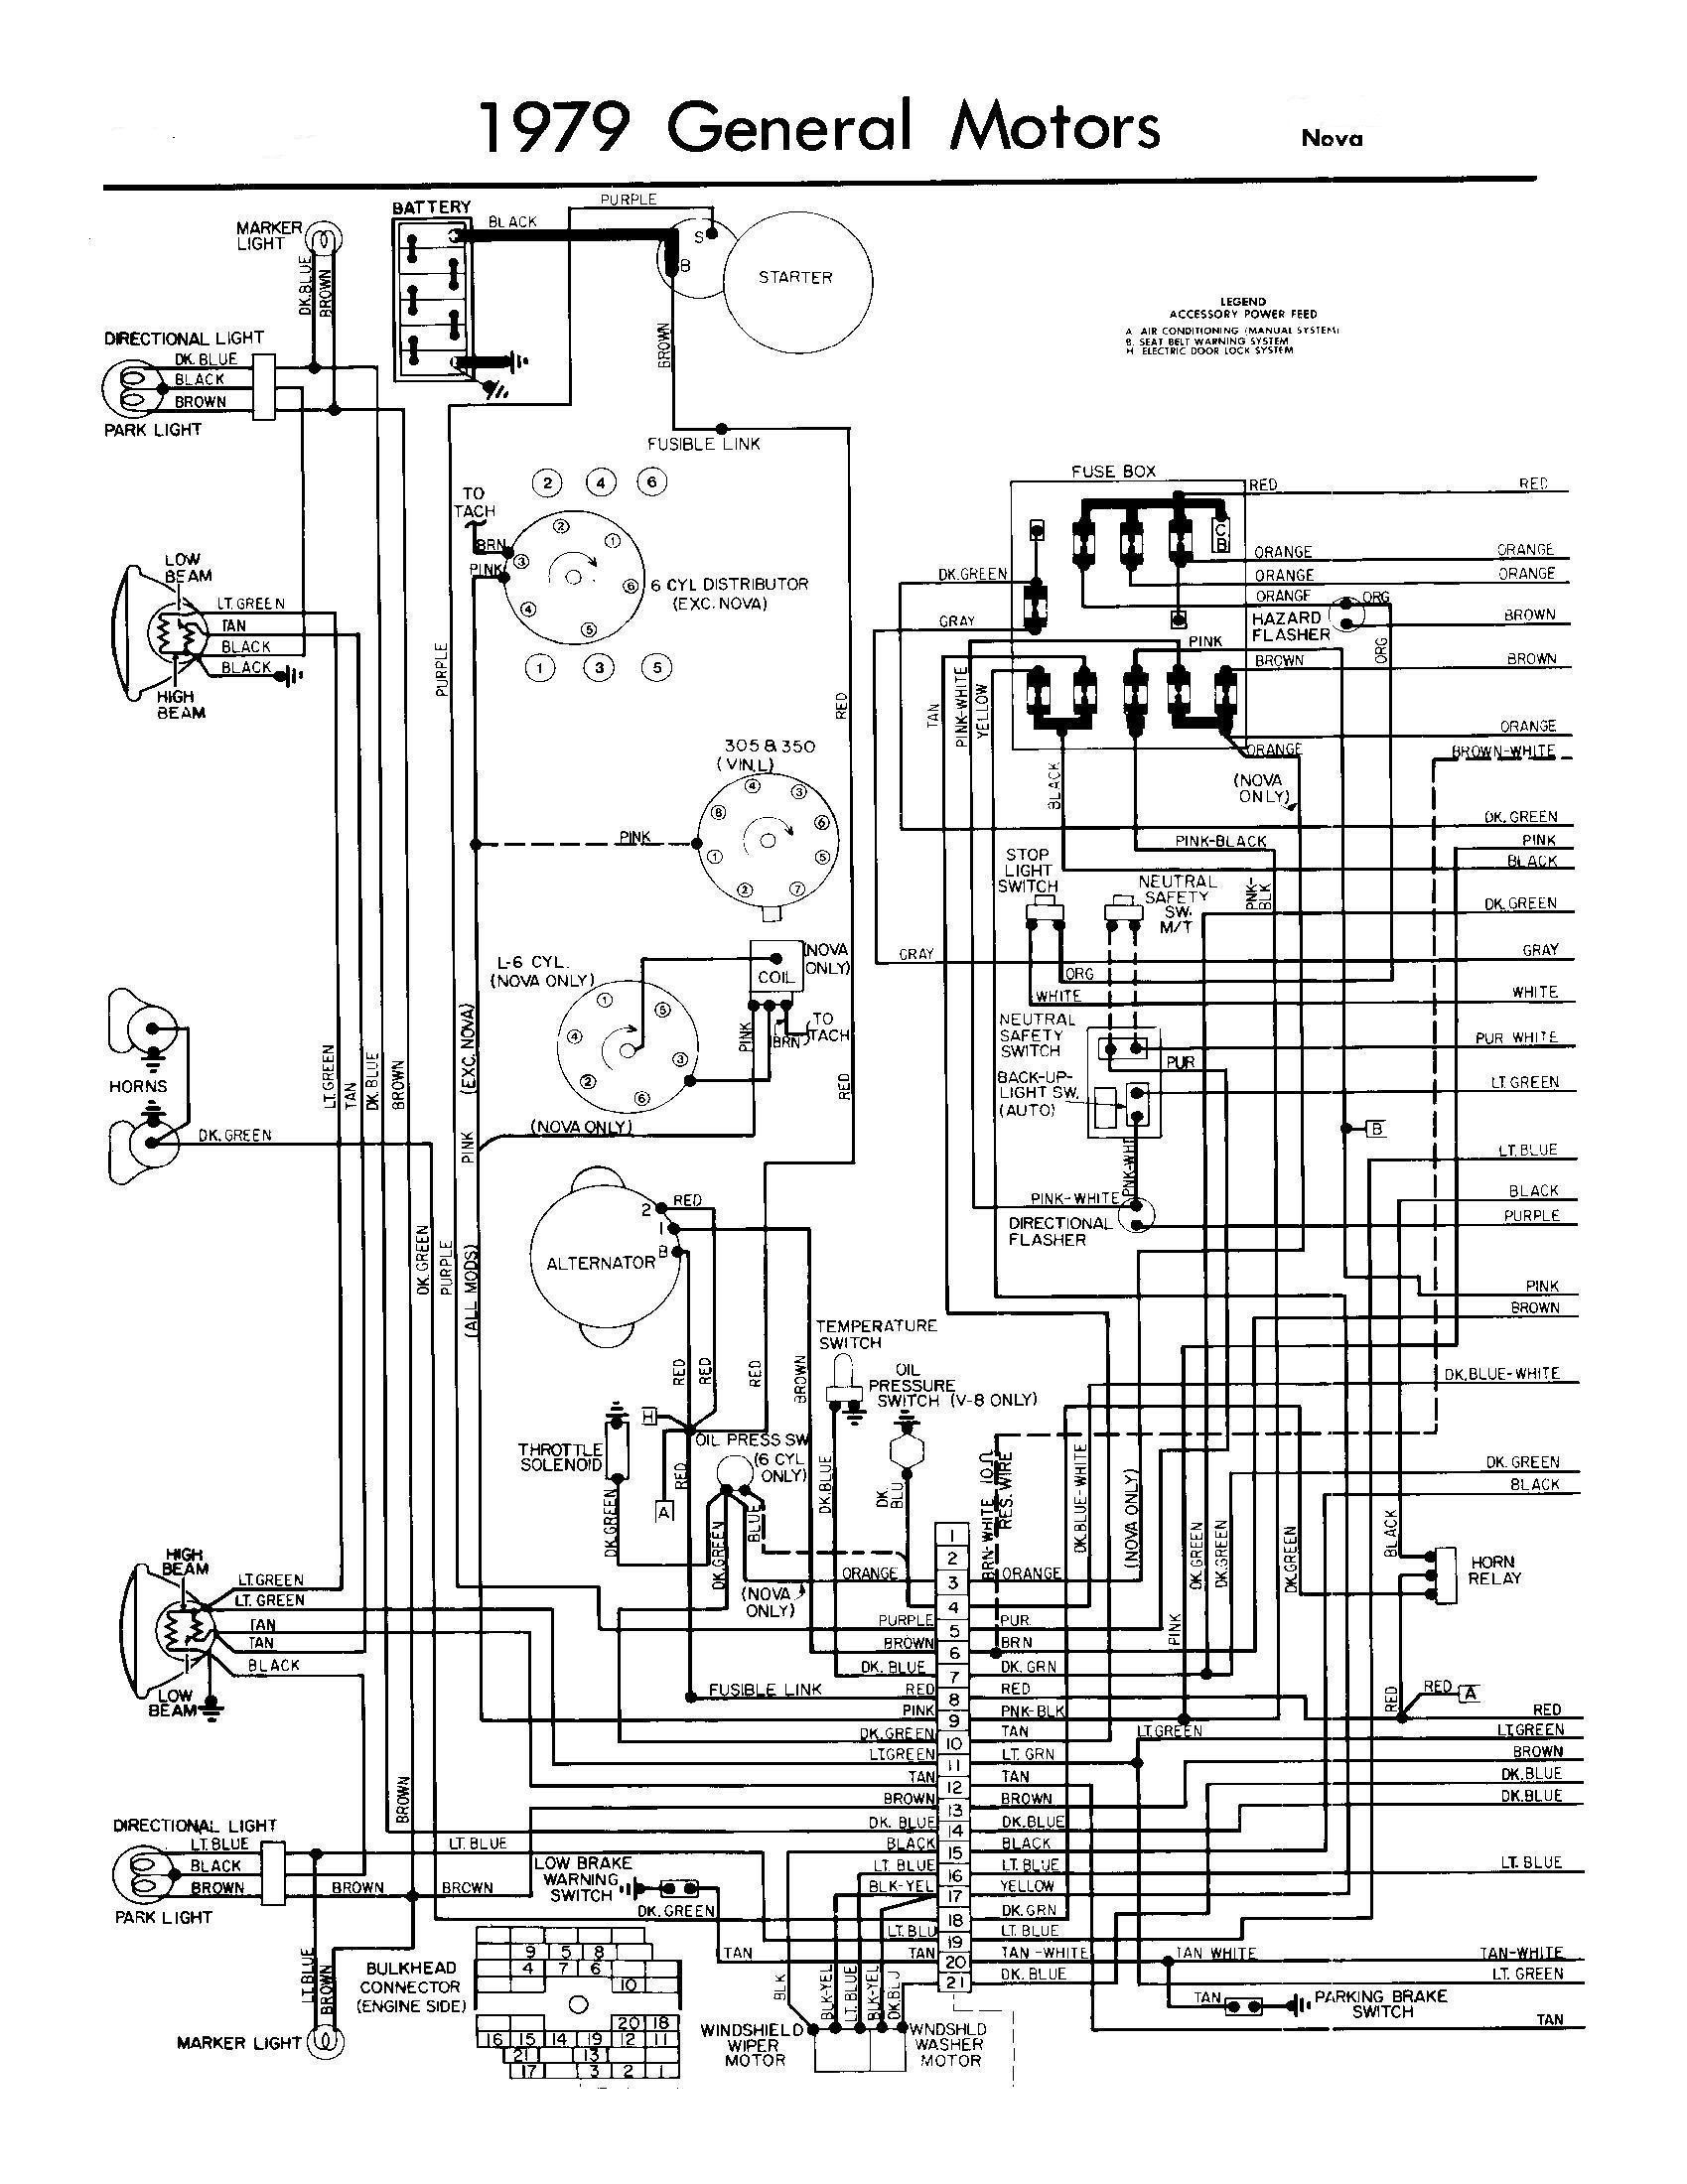 Astro Van Wiring Harness | Wiring Diagram on 2000 chevy s10 fuel pump, 2000 chevy fuel pump hose, 2000 chevy fuel pump connector, 2000 chevy tail light wiring diagram, 2000 chevy brake light switch diagram, 2000 chevy transfer case wiring diagram,